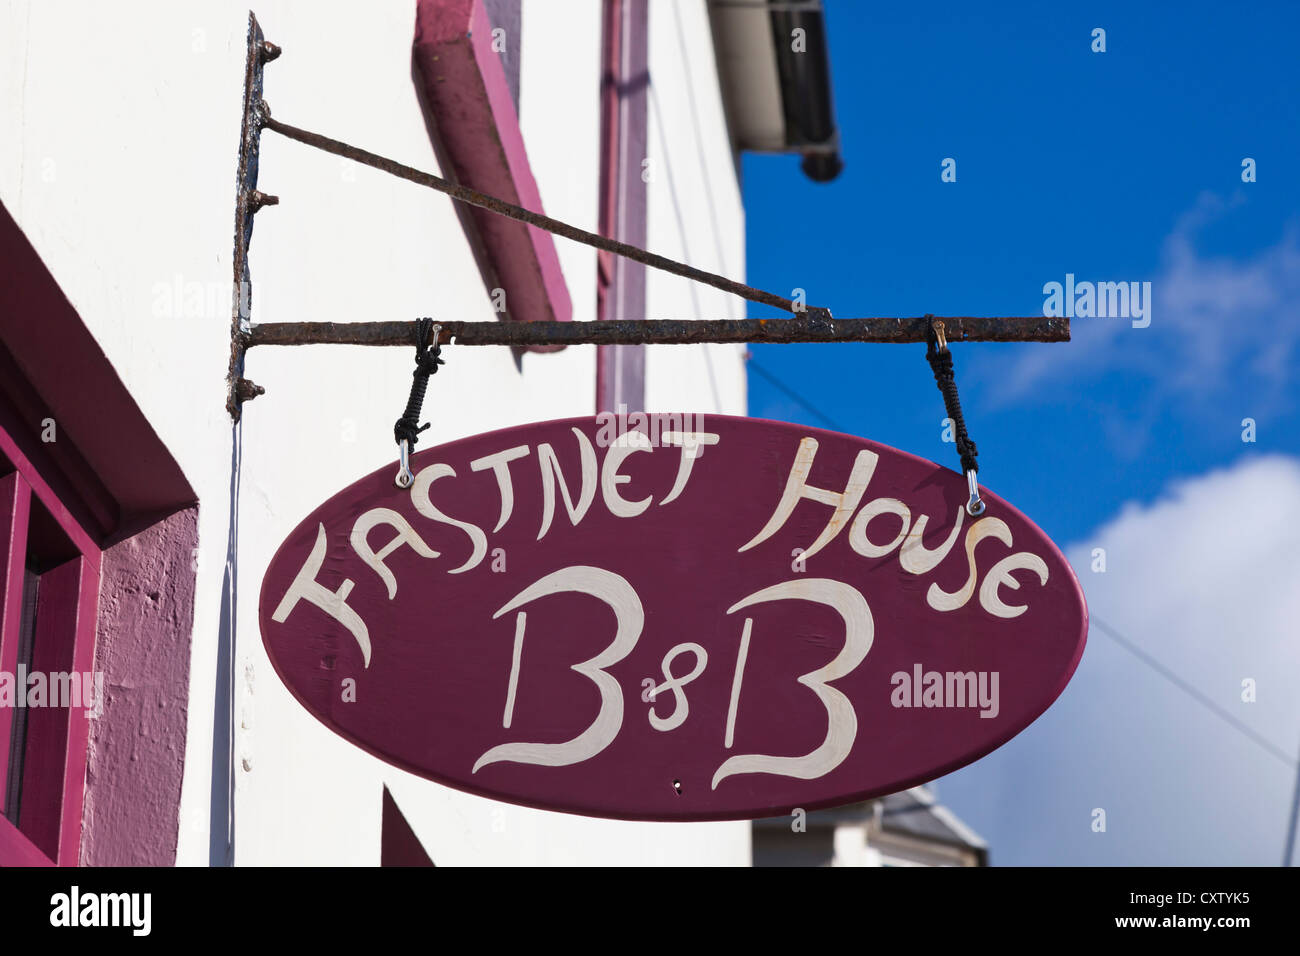 Baltimore, West Cork, Ireland. Sign for Fastnet House B & B. Bed and Breakfast. Typical Irish sign. - Stock Image